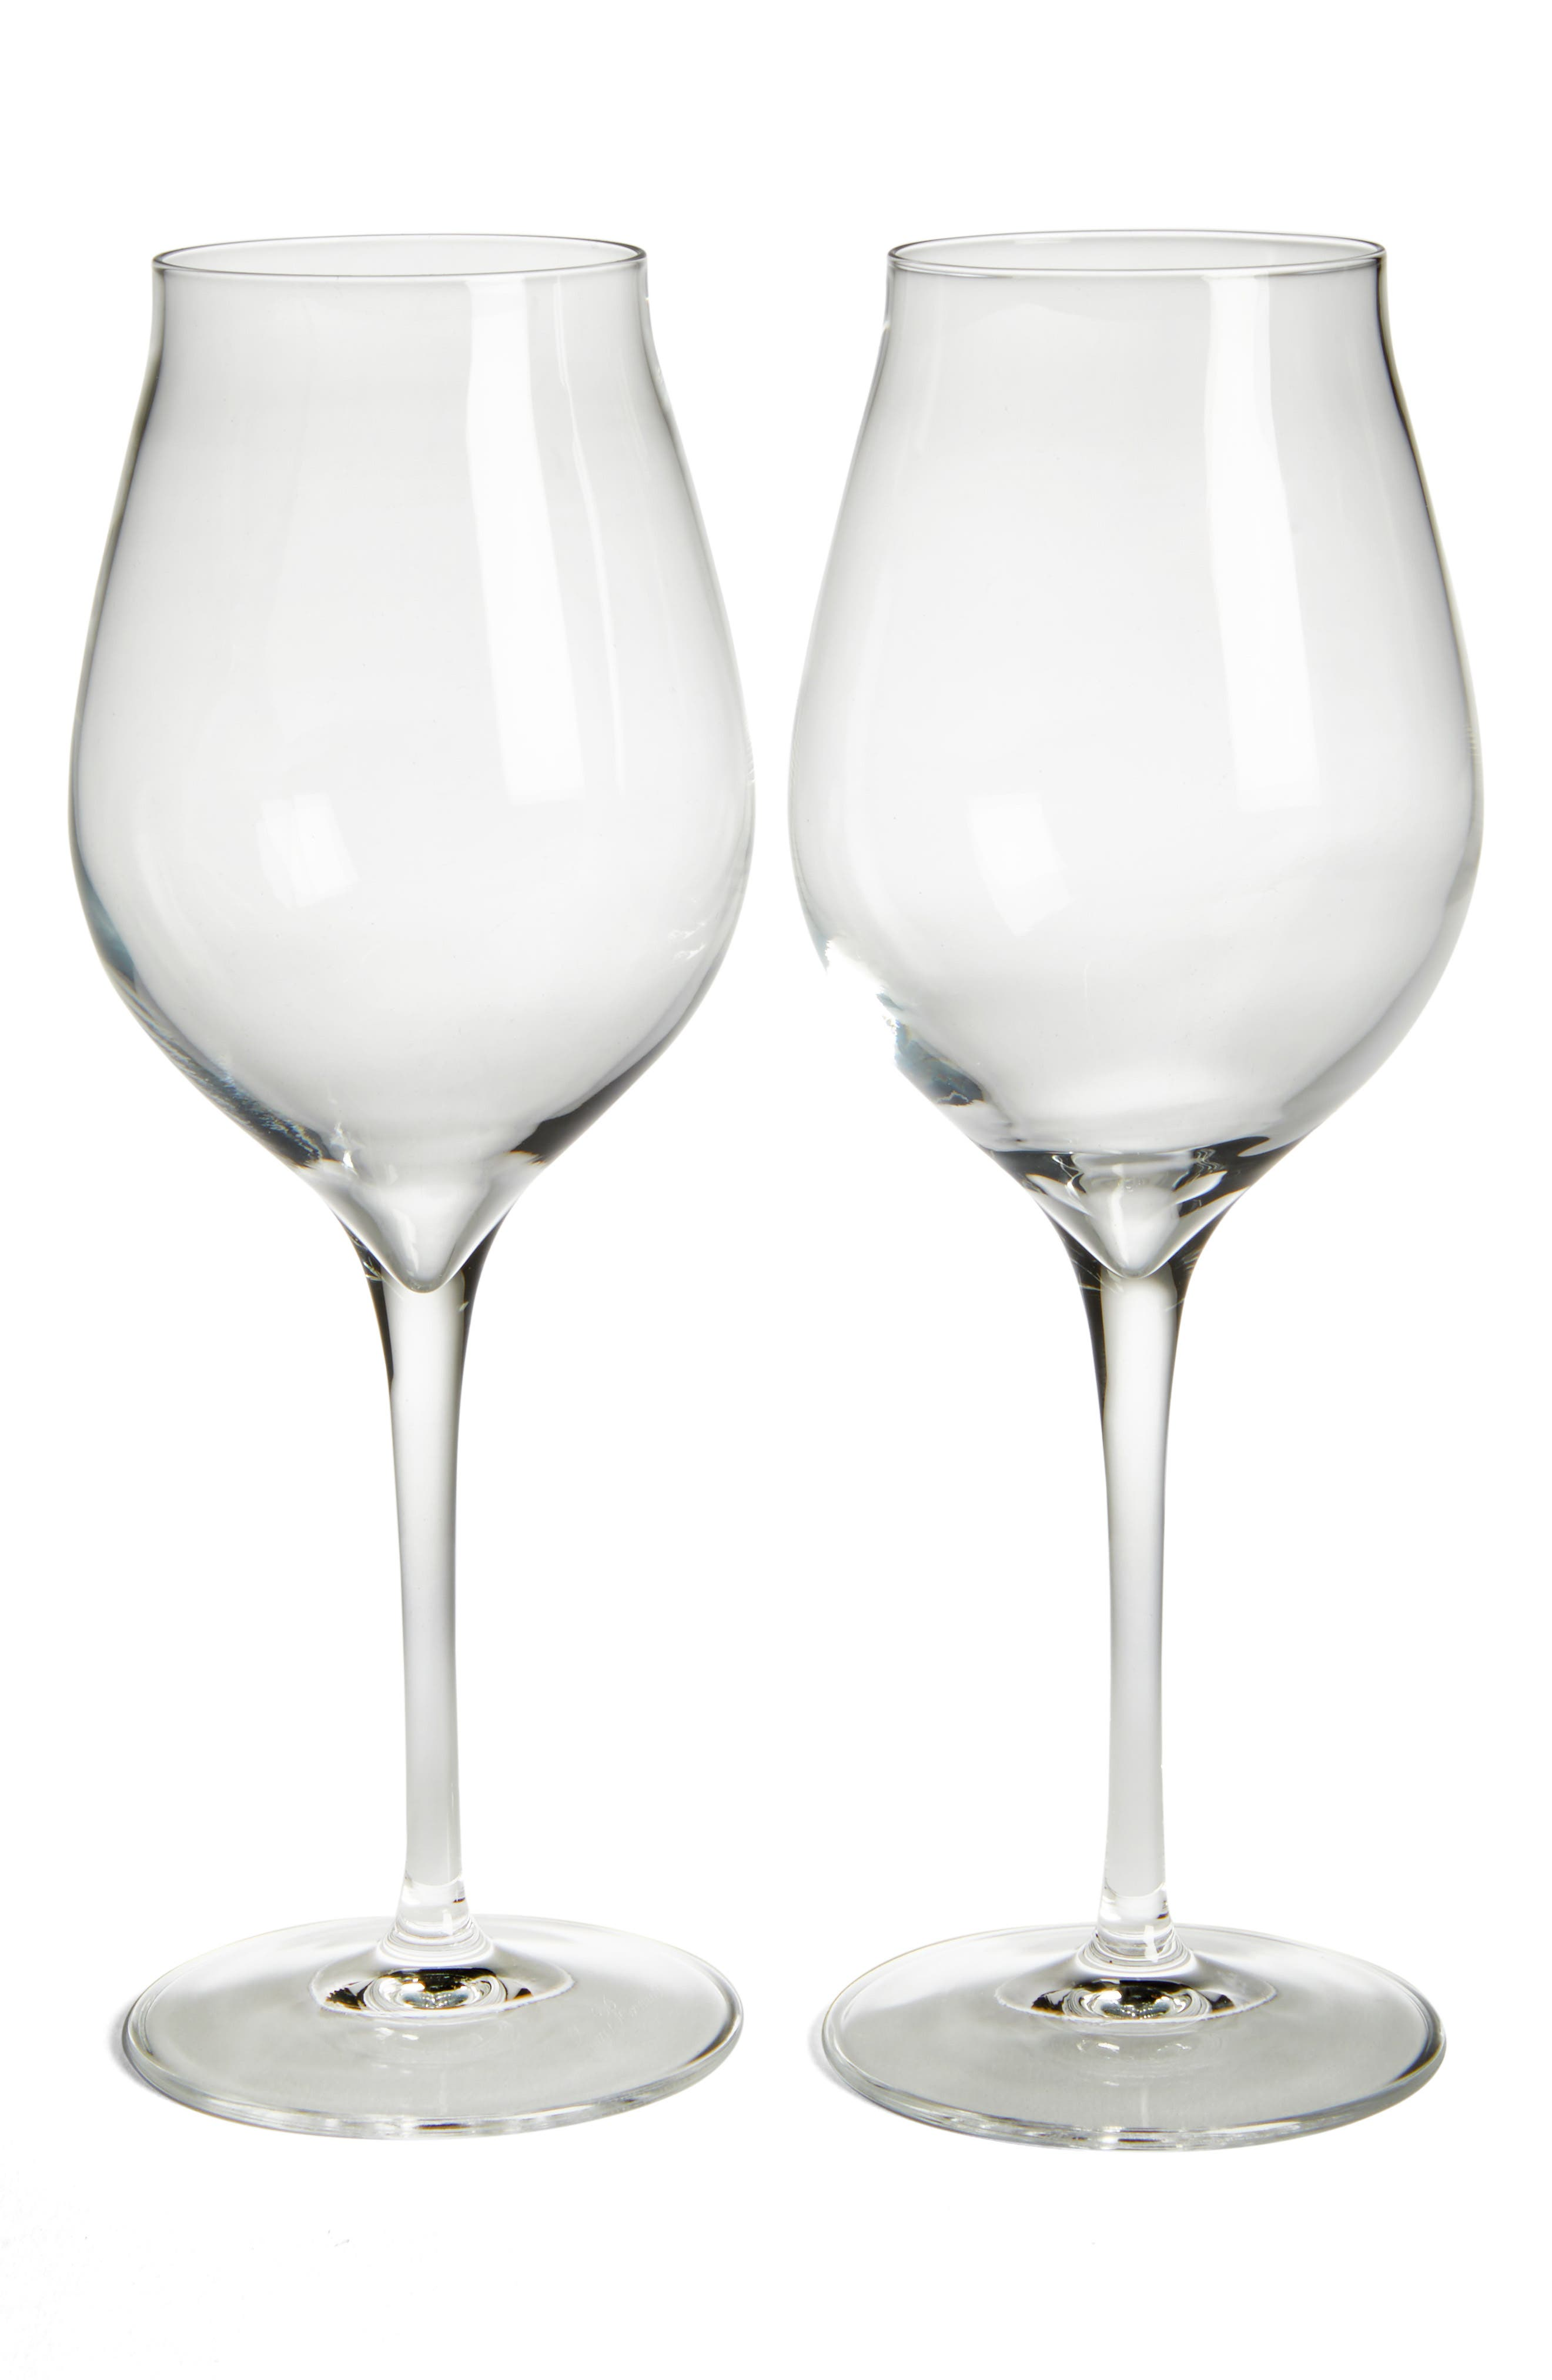 Luigi Bormiolo Vinea Malvasia/Orvieto Set of 2 White Wine Glasses